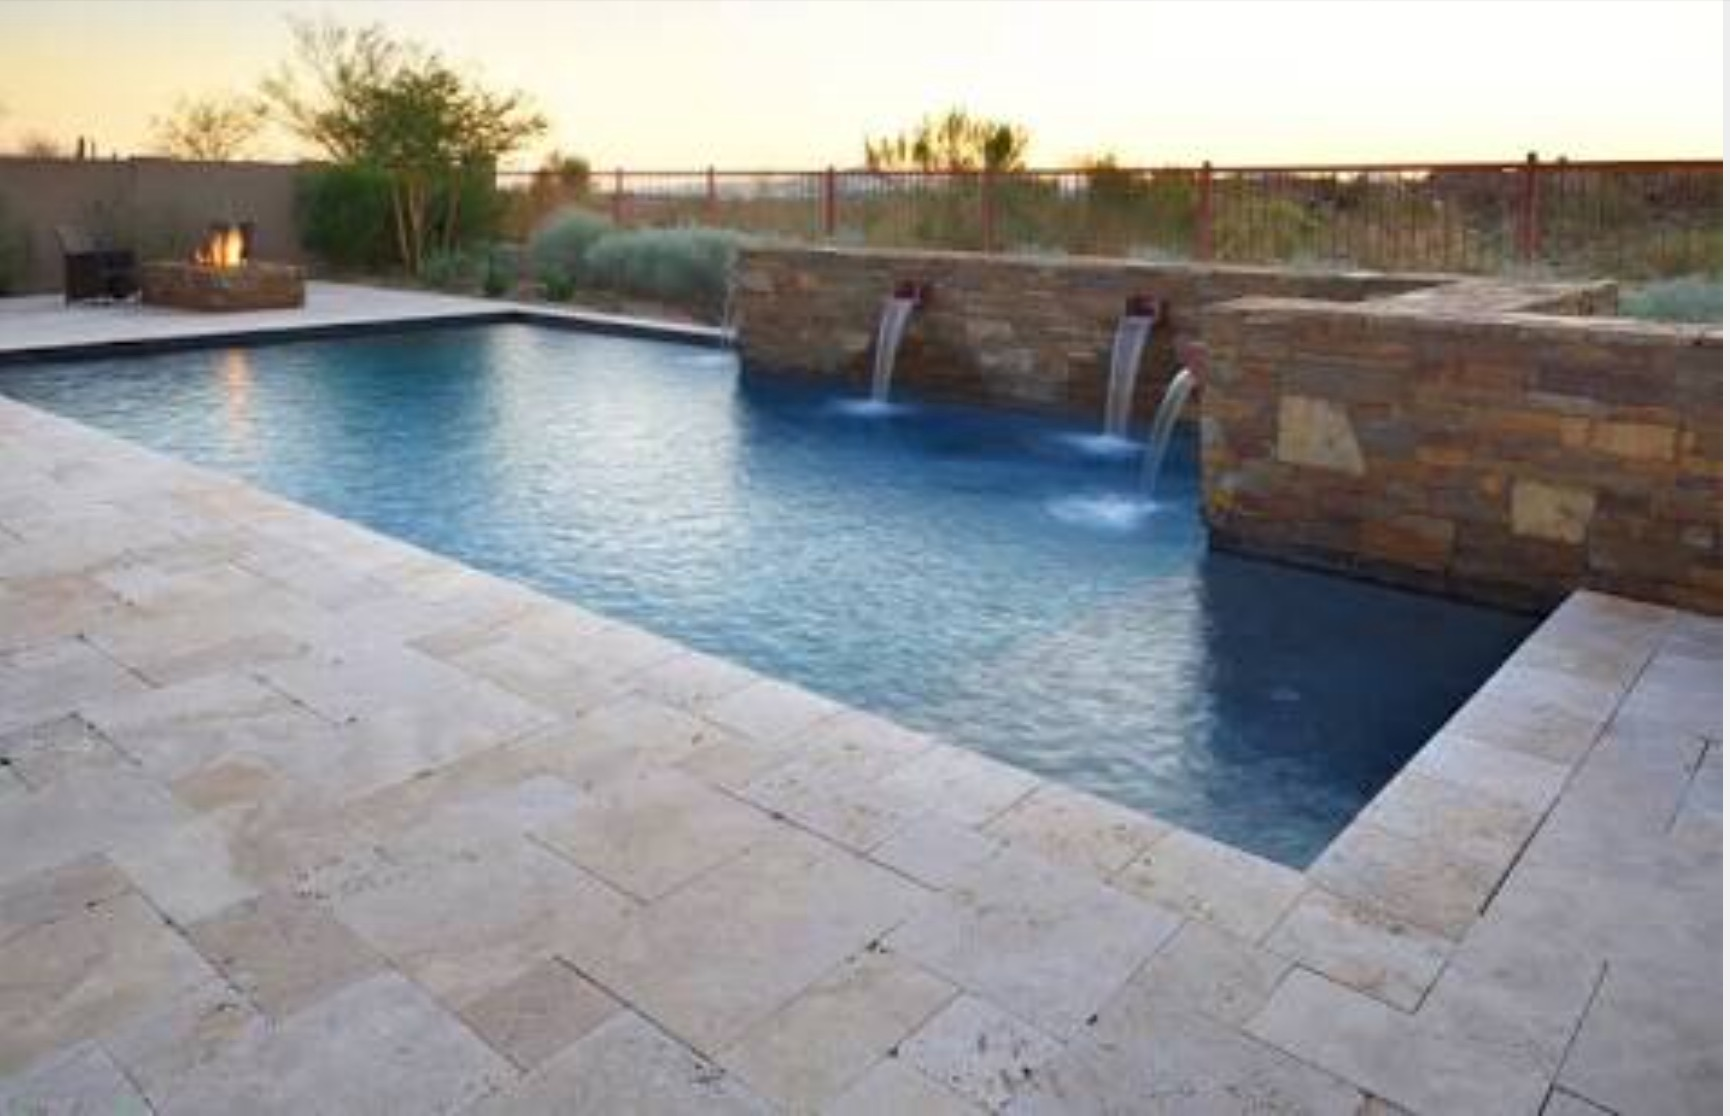 Pavers Around Swimming Pool Pool Coping Tiles Pavers  Melbourne Travertine Tiles & Pavers